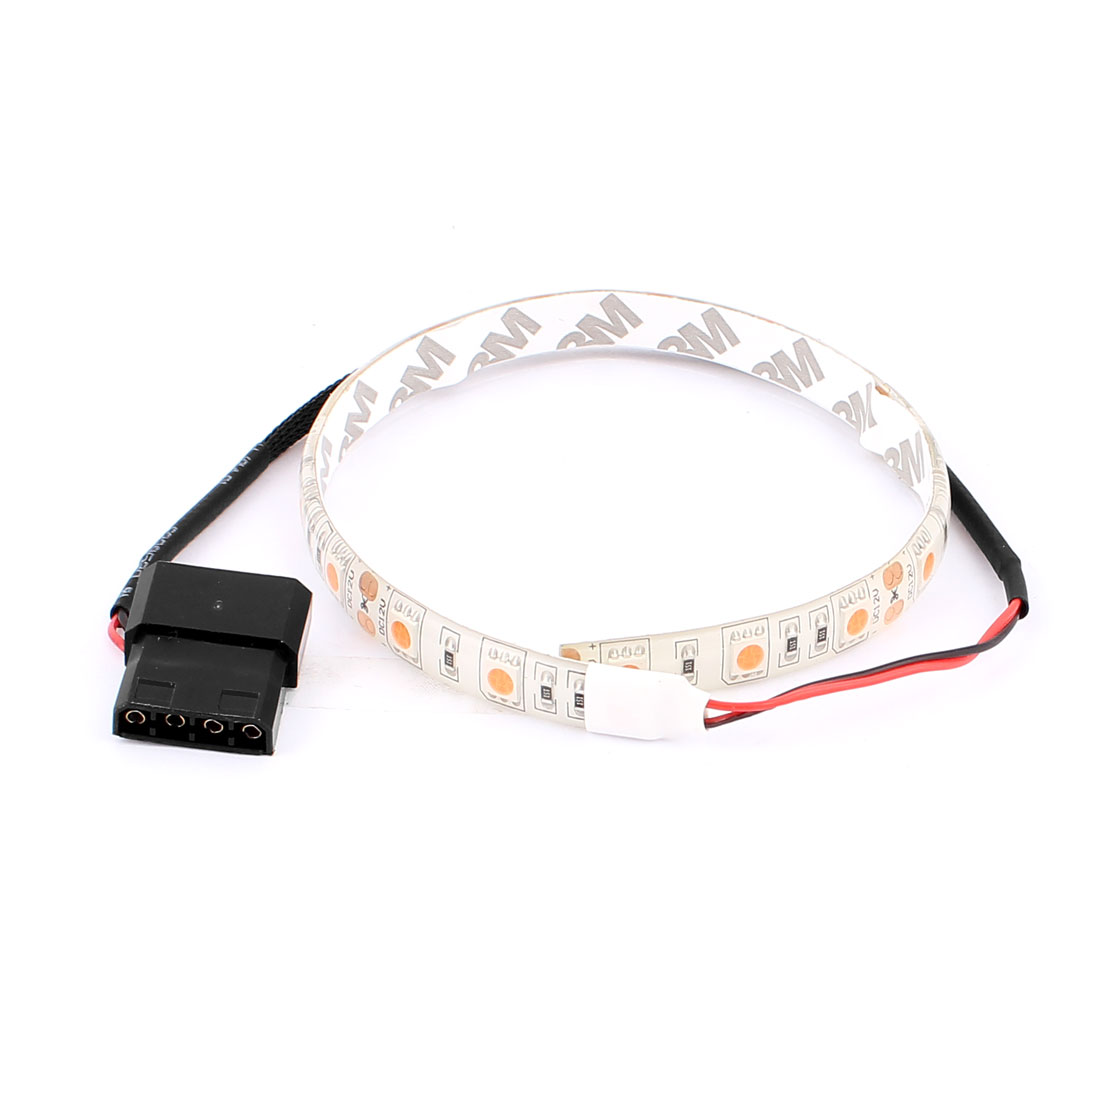 30cm Self-adhesive DC 12V 4Pin IDE 5050 SMD Warm White 17-LED Flexible Decoration Light Strip for PC Computer Box